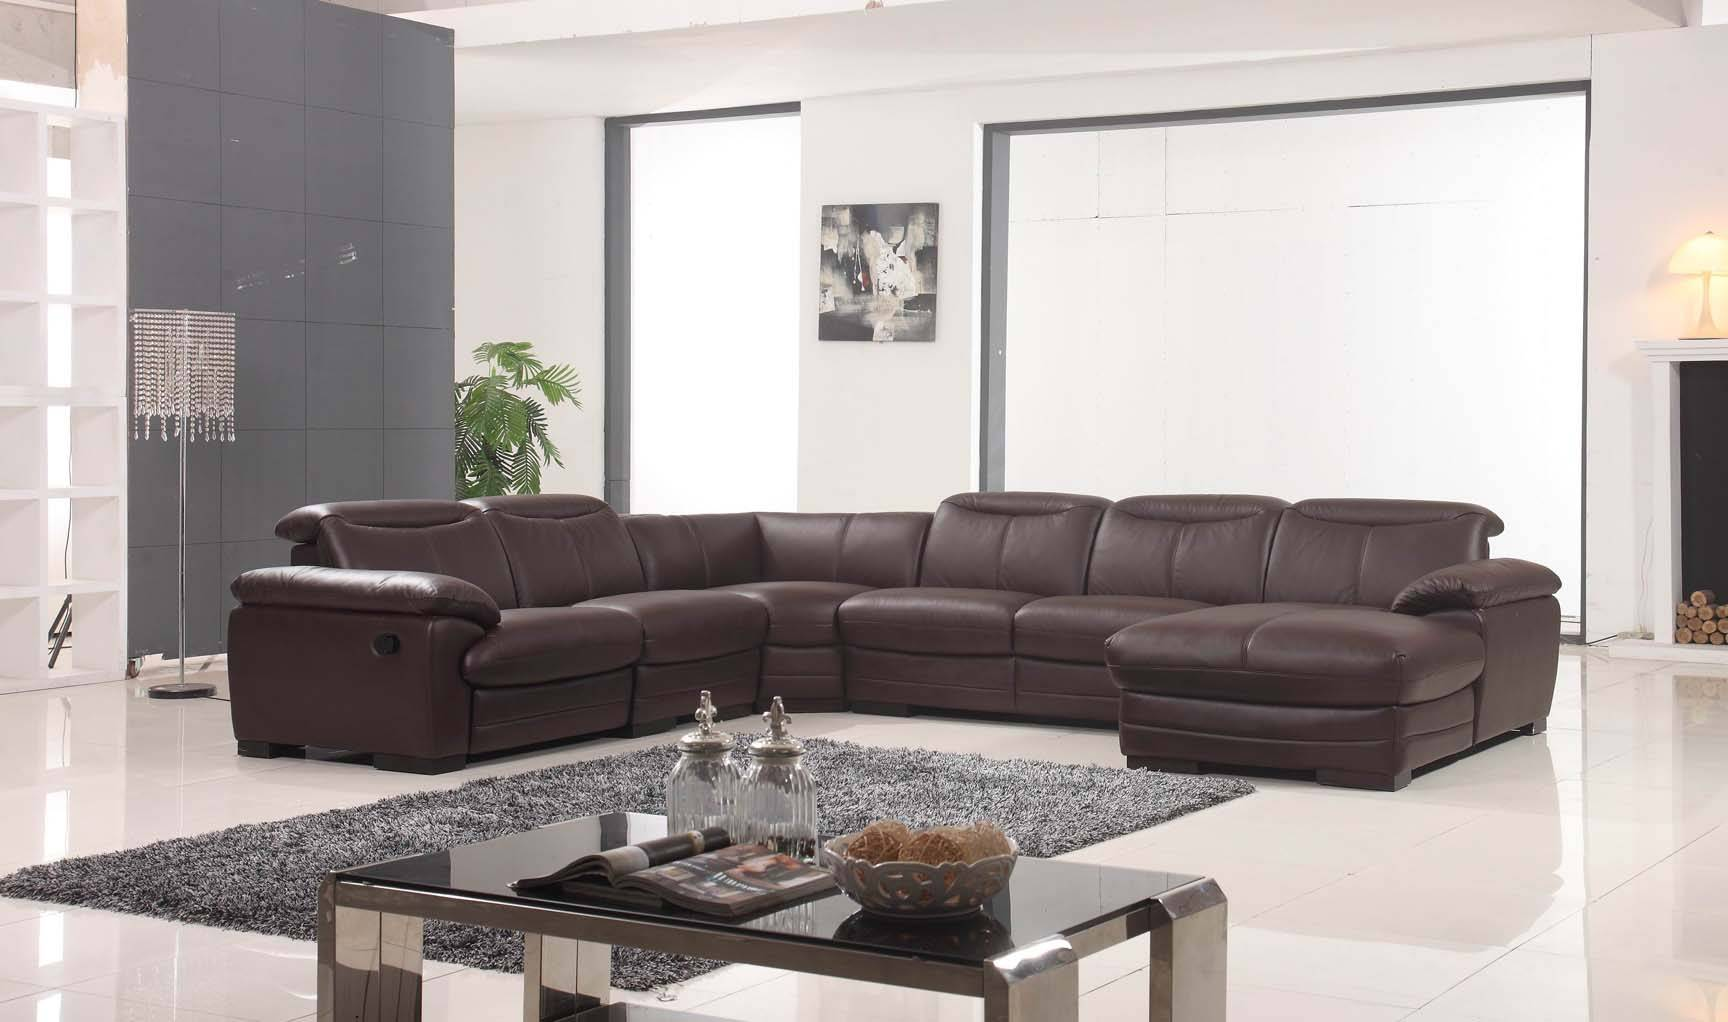 large brown leather contemporary sectional set with recliner chair. Black Bedroom Furniture Sets. Home Design Ideas